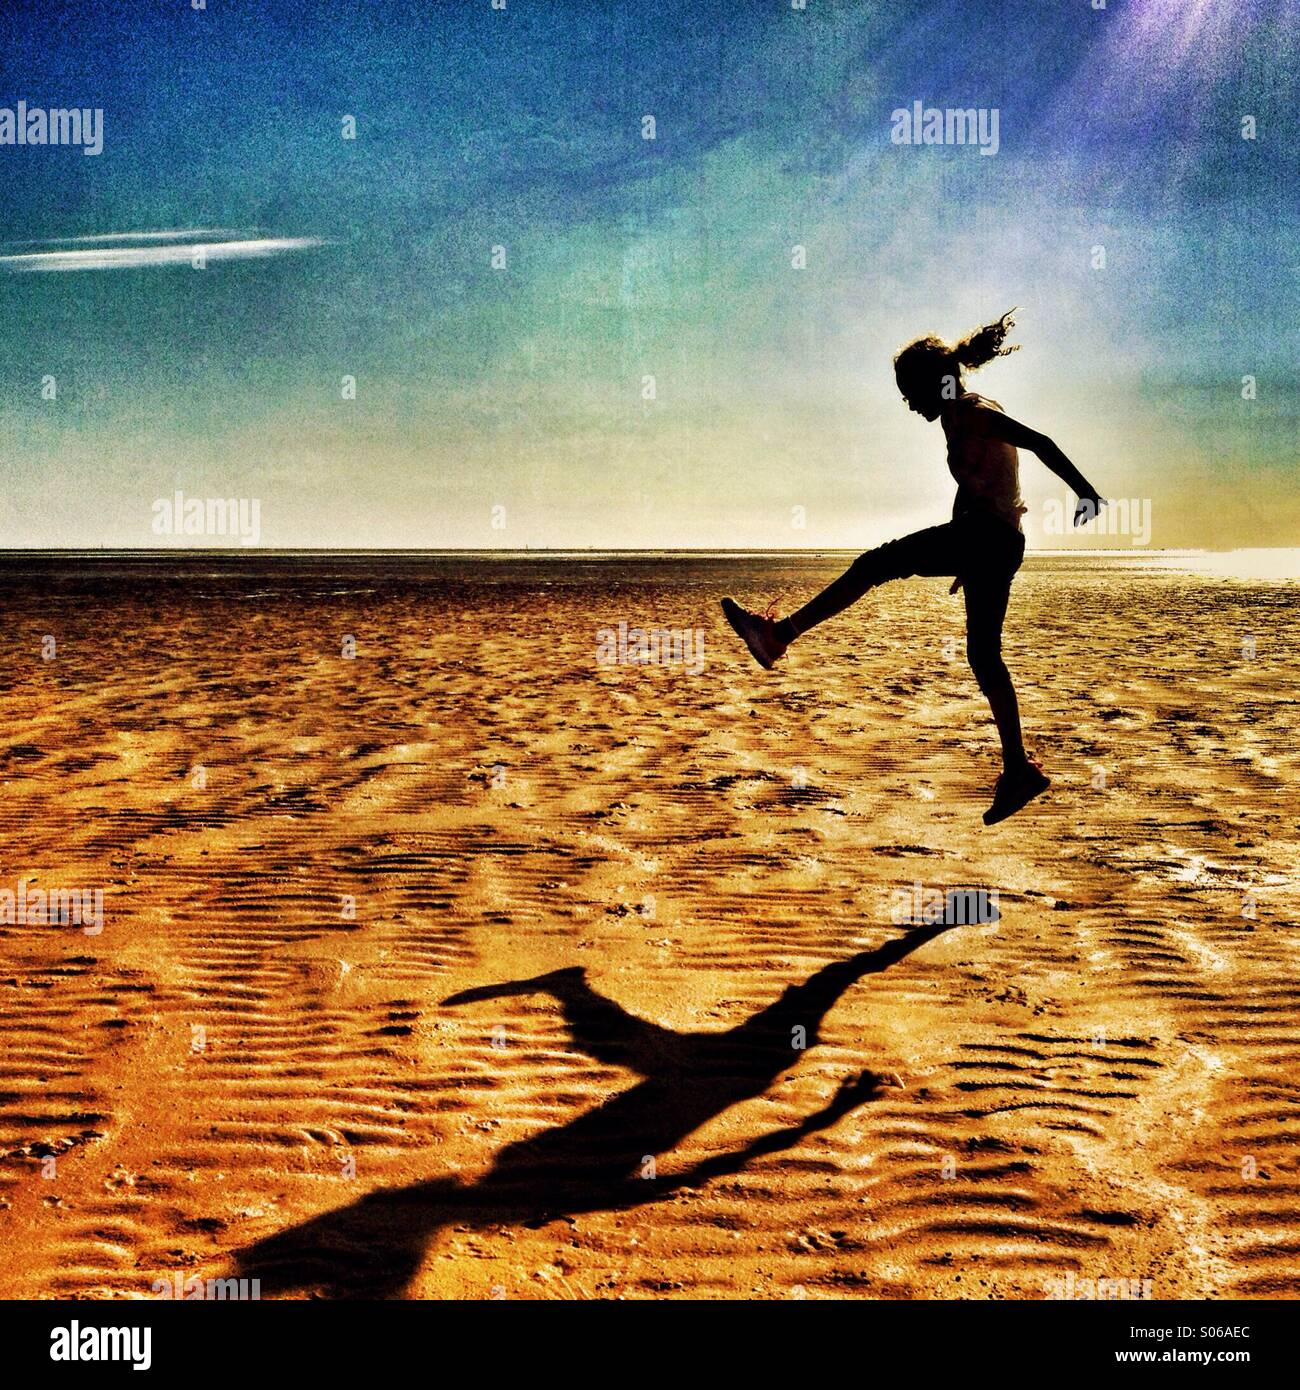 Girl jumping on empty beach Photo Stock